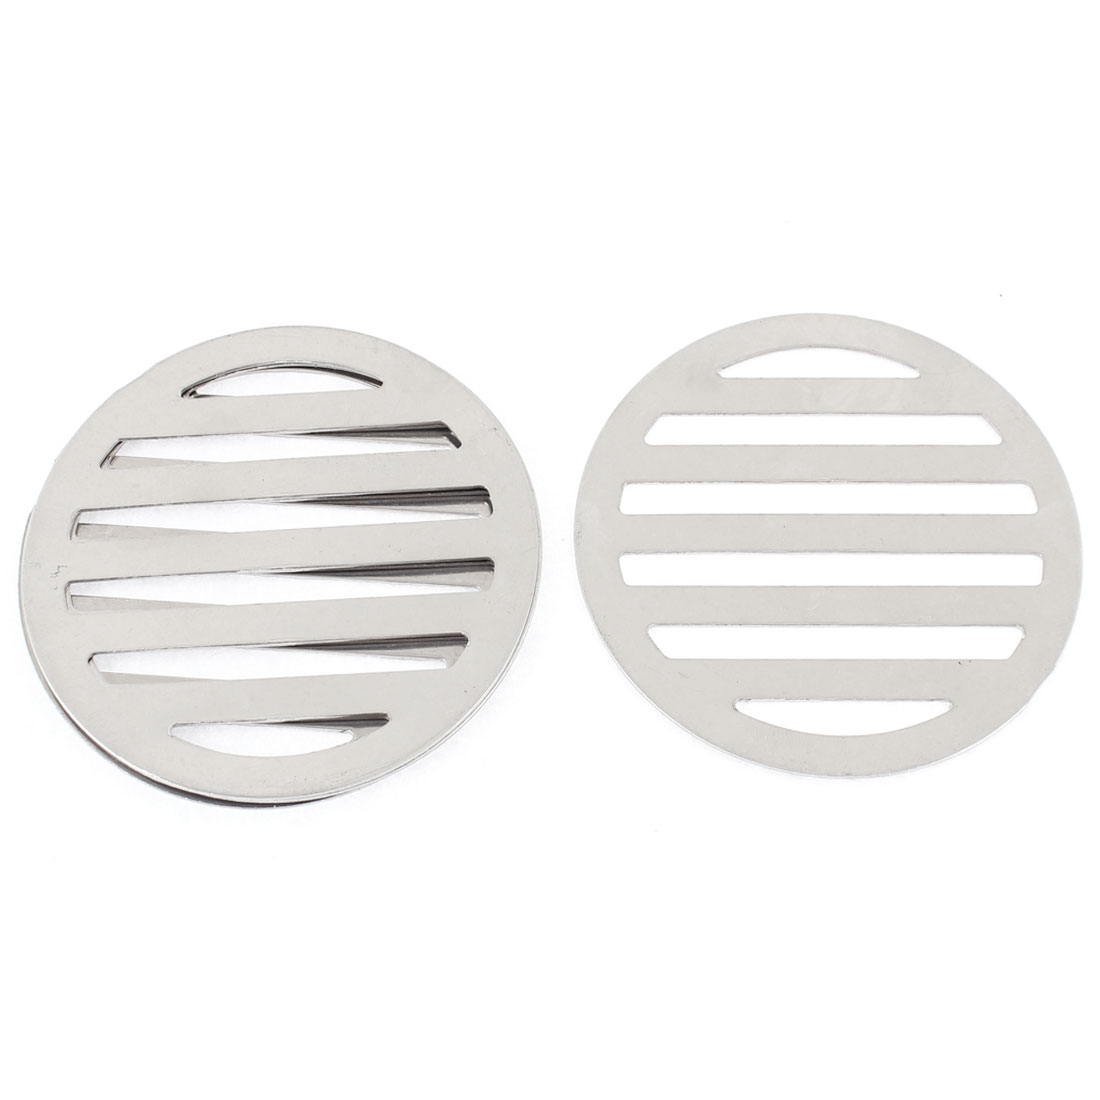 "Stainless Steel Kitchen Bathroom Round Floor Drain Cover 3.4"" 8.6cm 4Pcs"